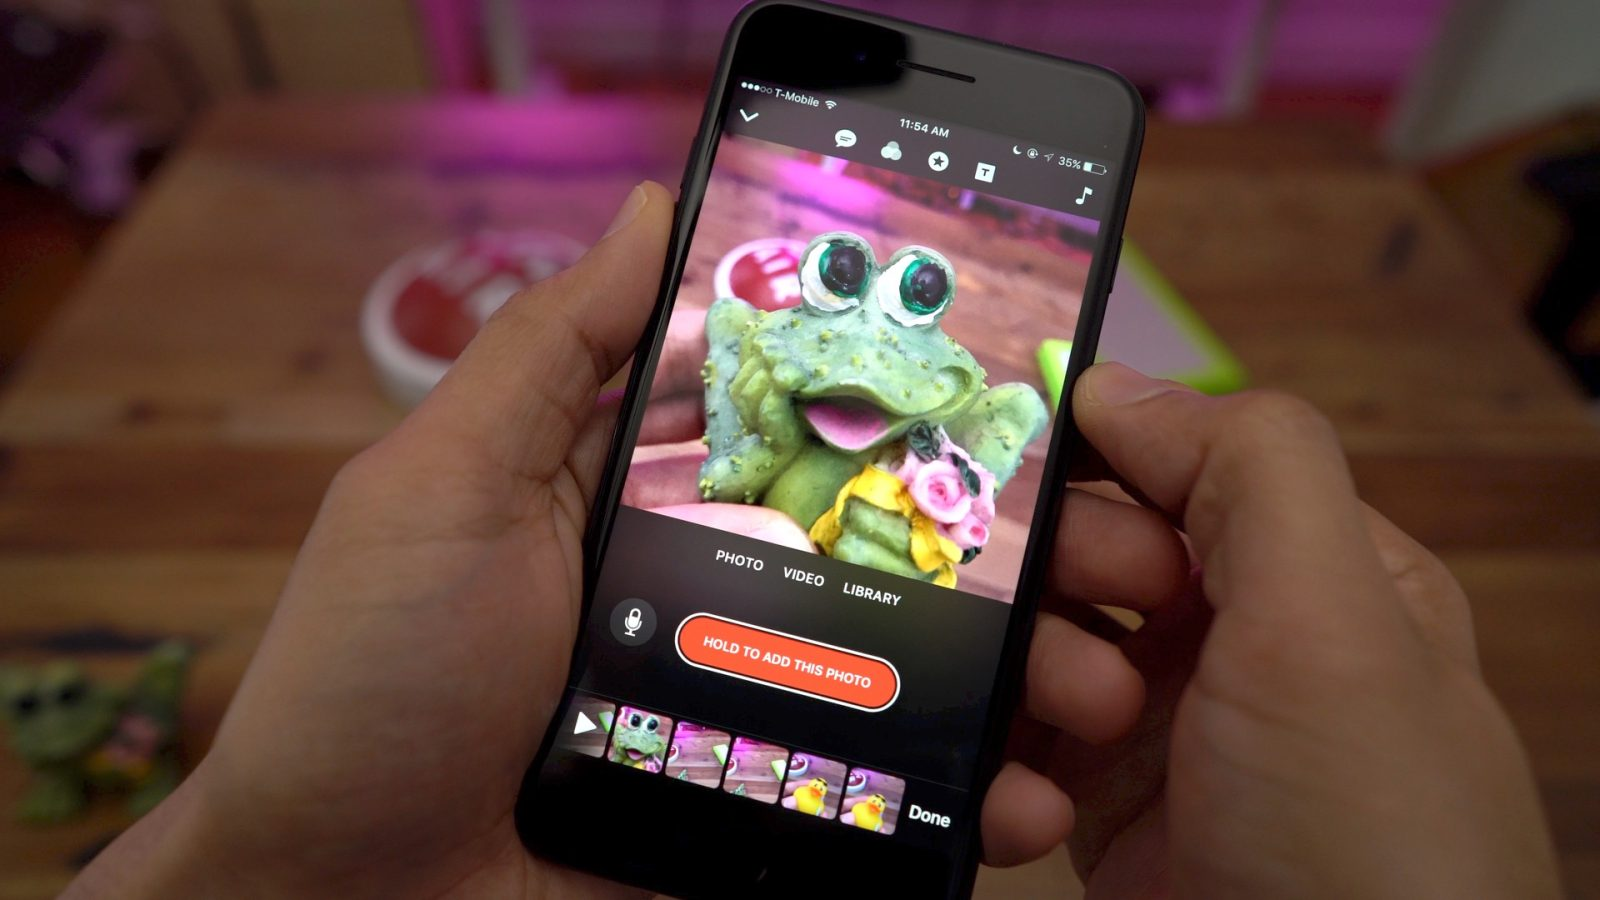 Apple's Clips app upgraded with retro camcorder filter, new stickers